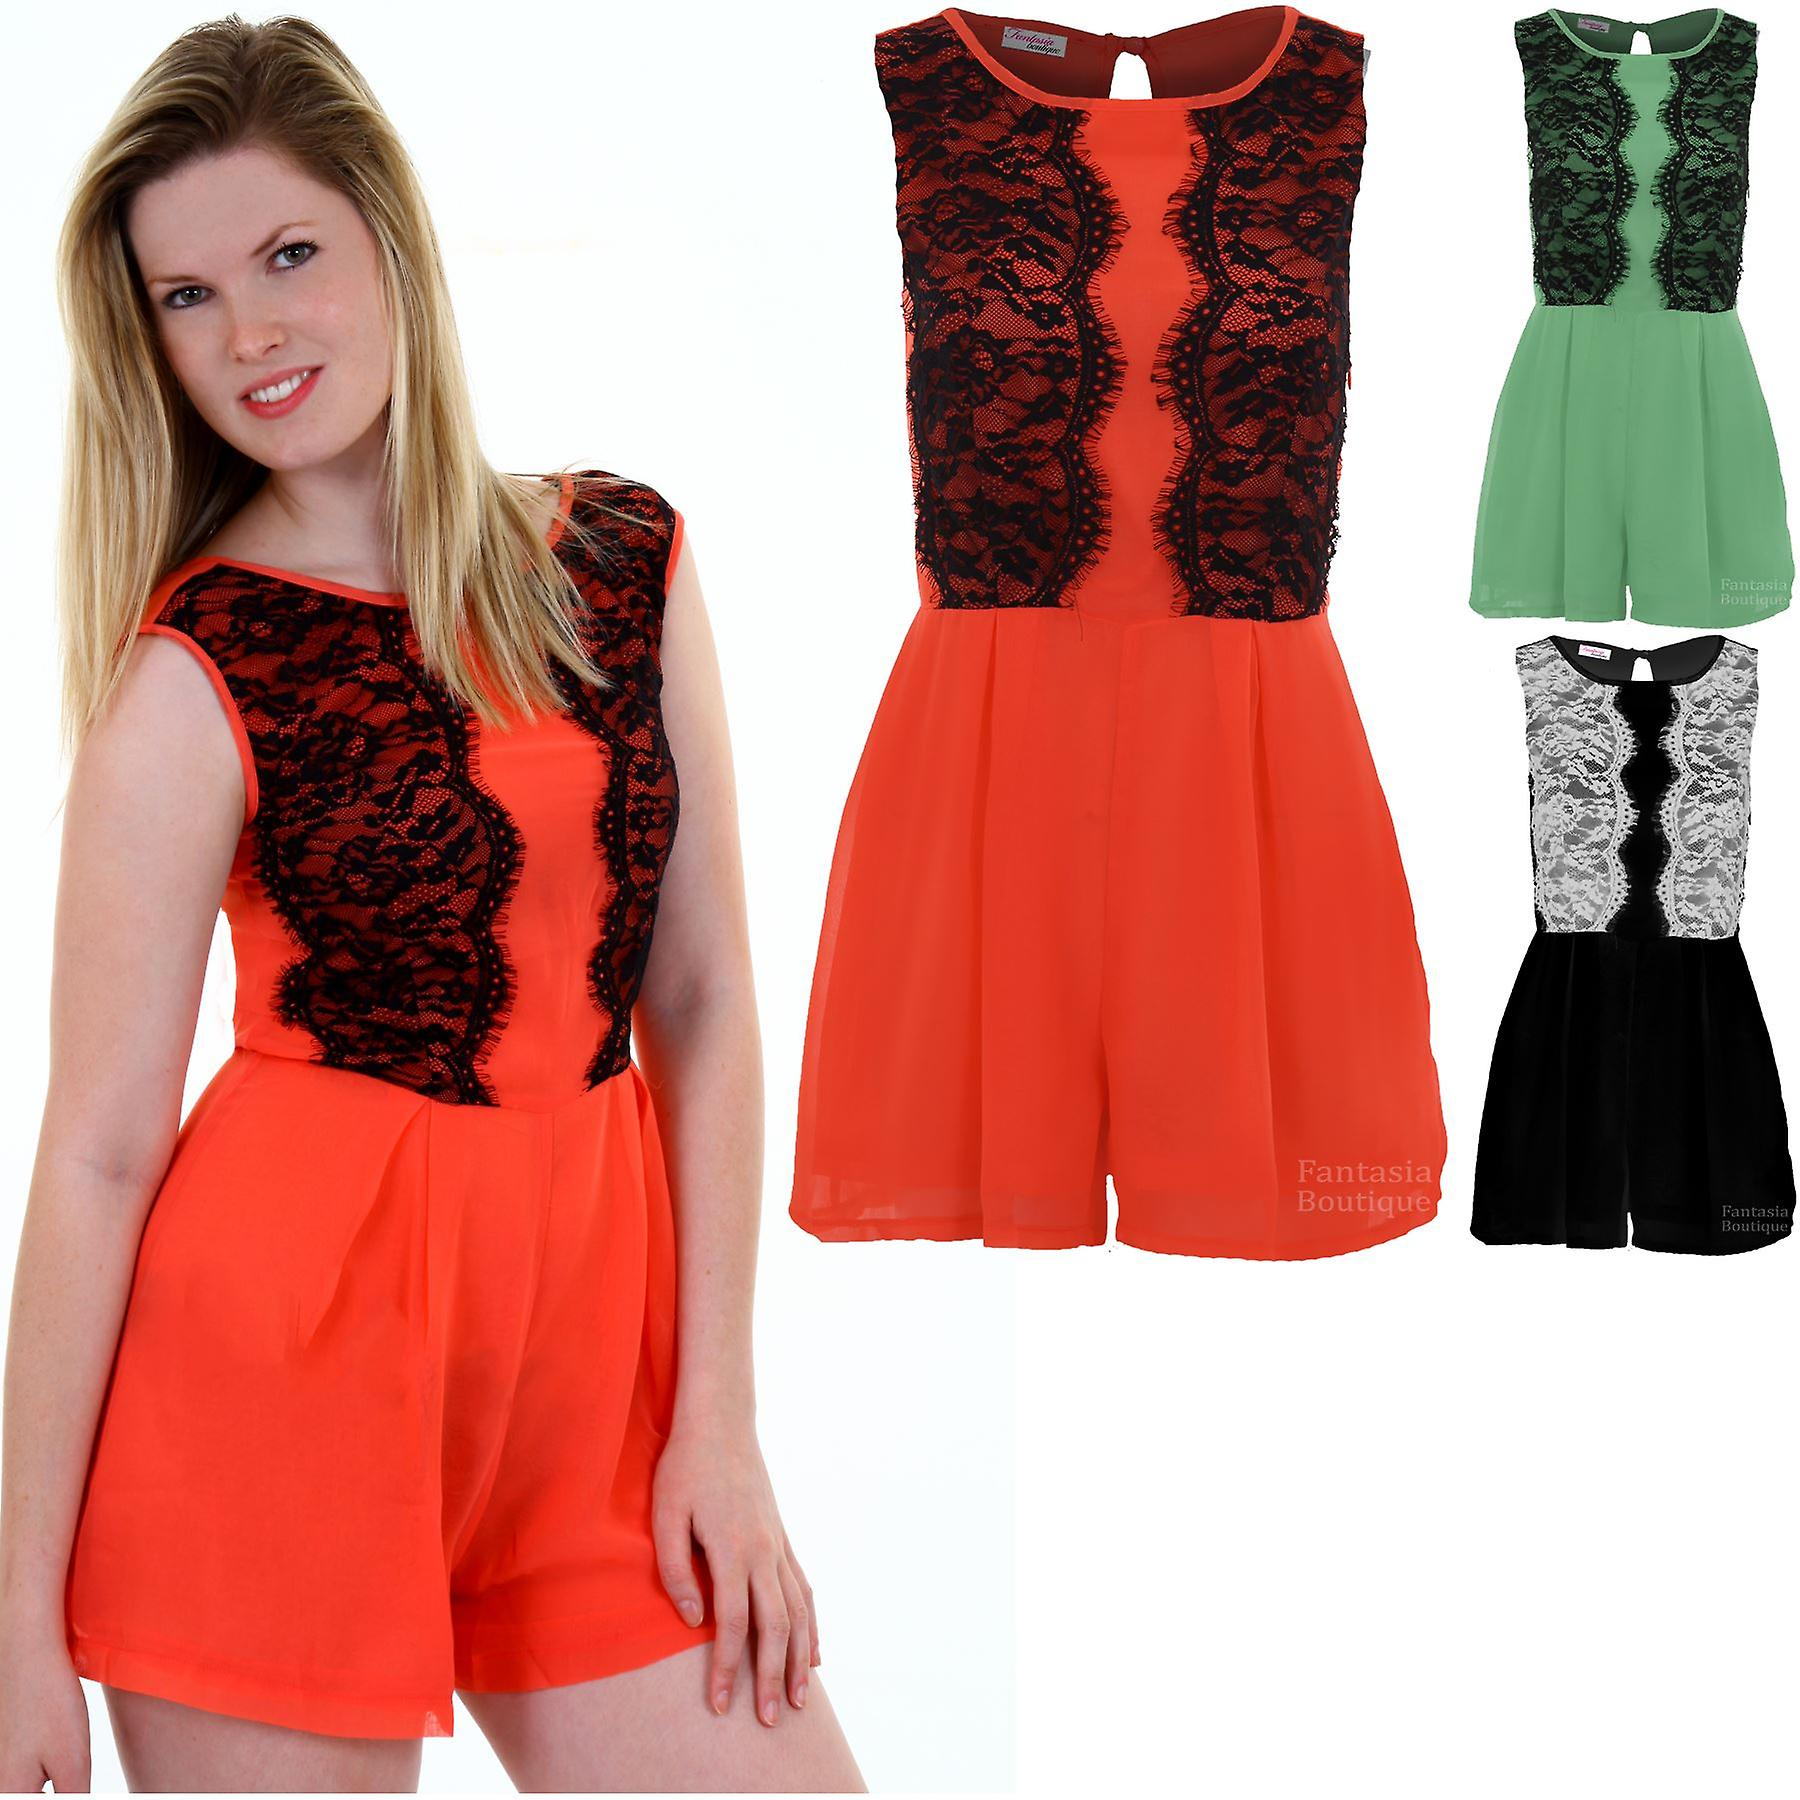 Ladies Sleeveless Floral Lace Contrast Lined Chiffon Women's All In One Playsuit